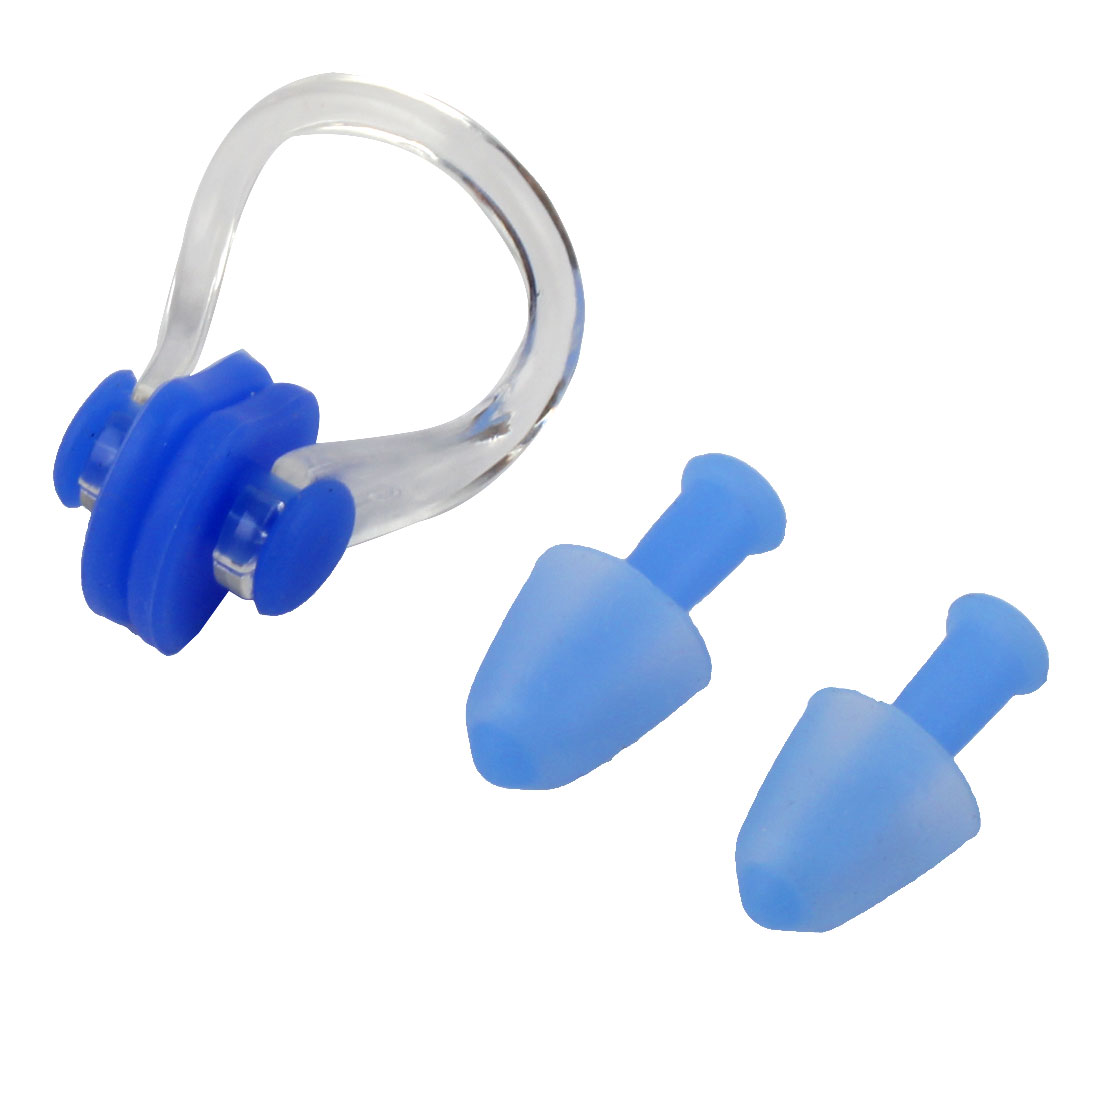 Swimming Soft Silicone Water Resistant Earplugs Nose Clip Protactor Blue Set